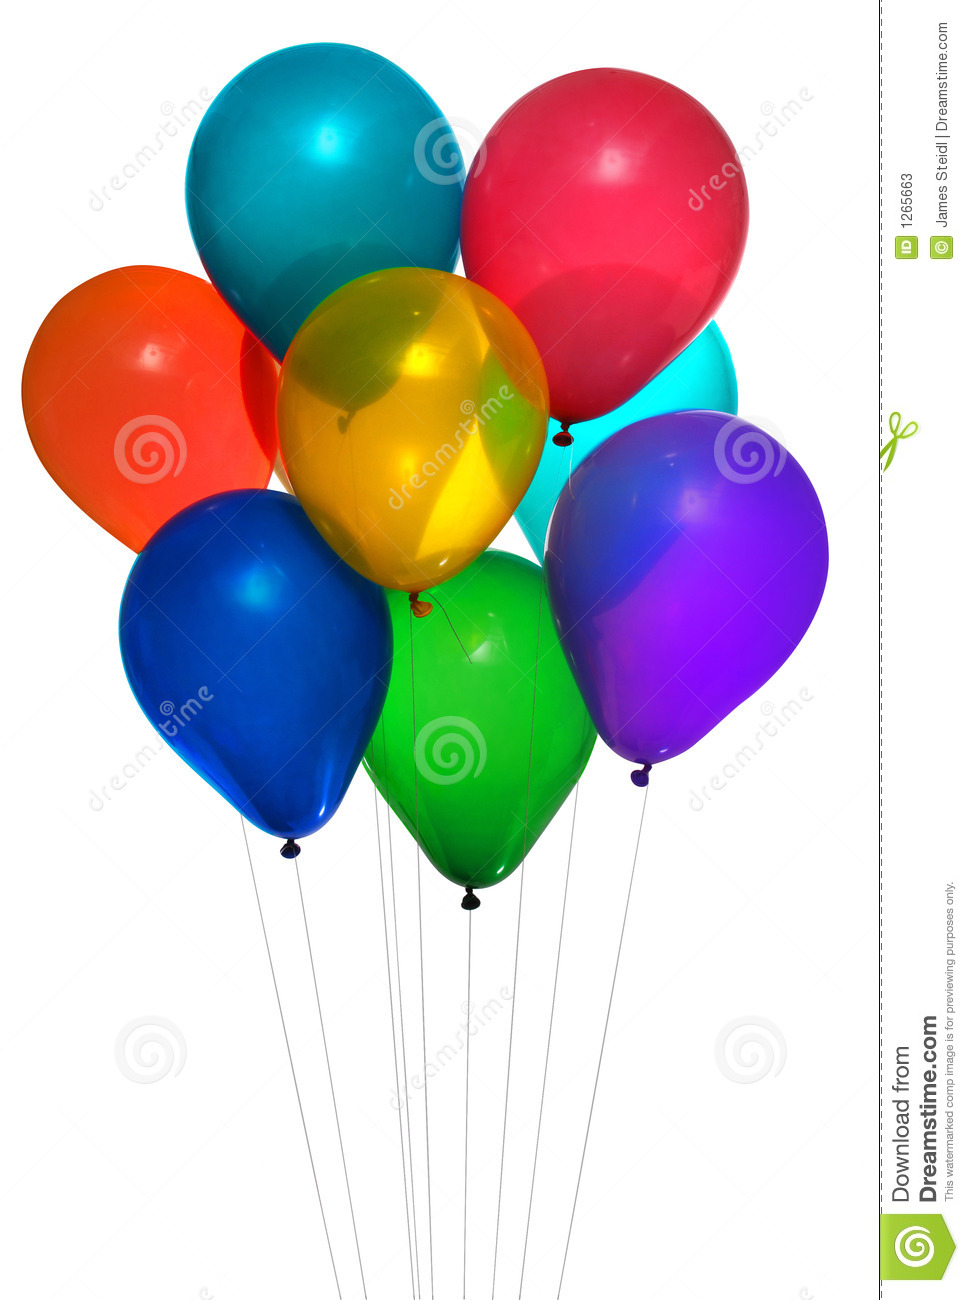 Party Baloons Stock Photos - Image: 1265663